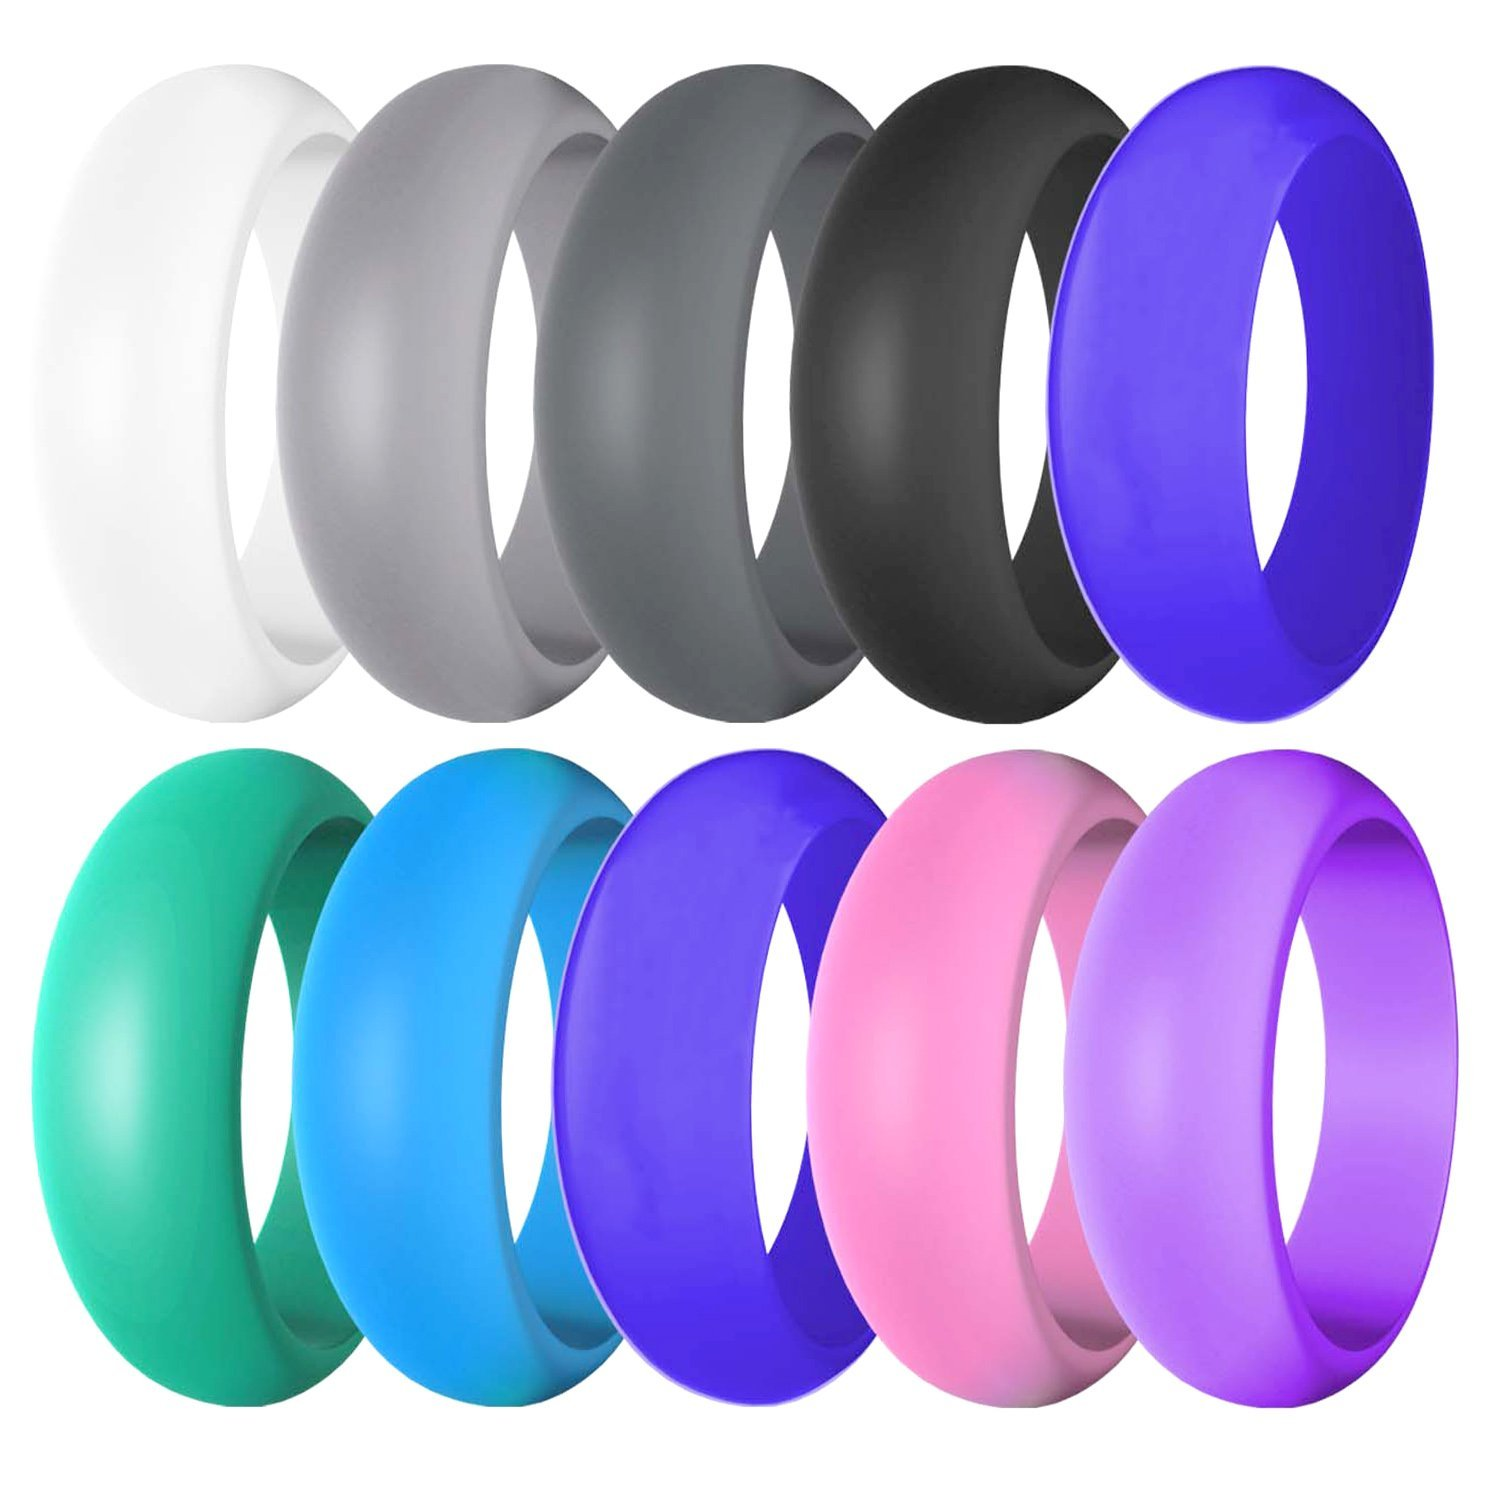 10 Pack-Silicone Affordable Wedding Ring For Men and Women Rubber Band,18.2mm,18.9mm,19.8mm,20.6mm,21.3mm